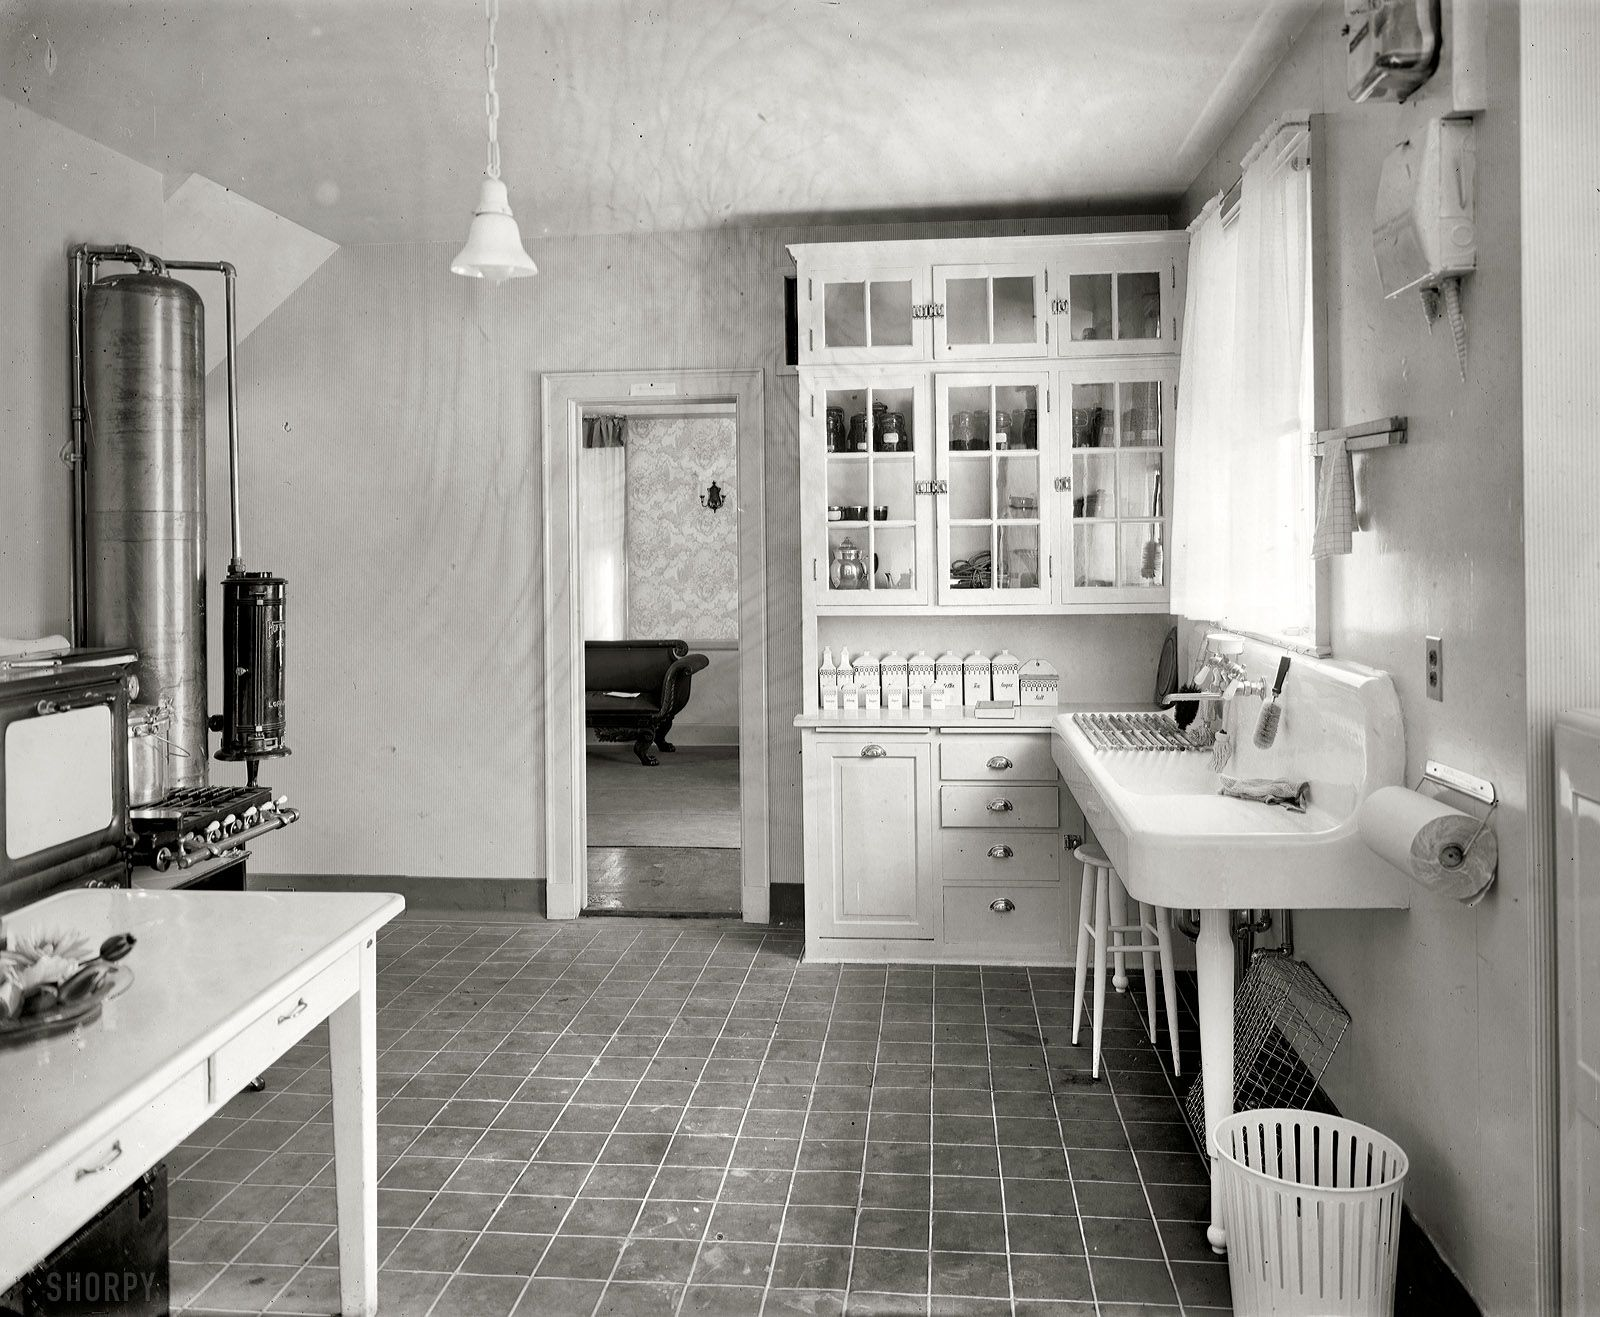 Laurelhurst craftsman bungalow period kitchen photographs for Bathroom design 1930 s home